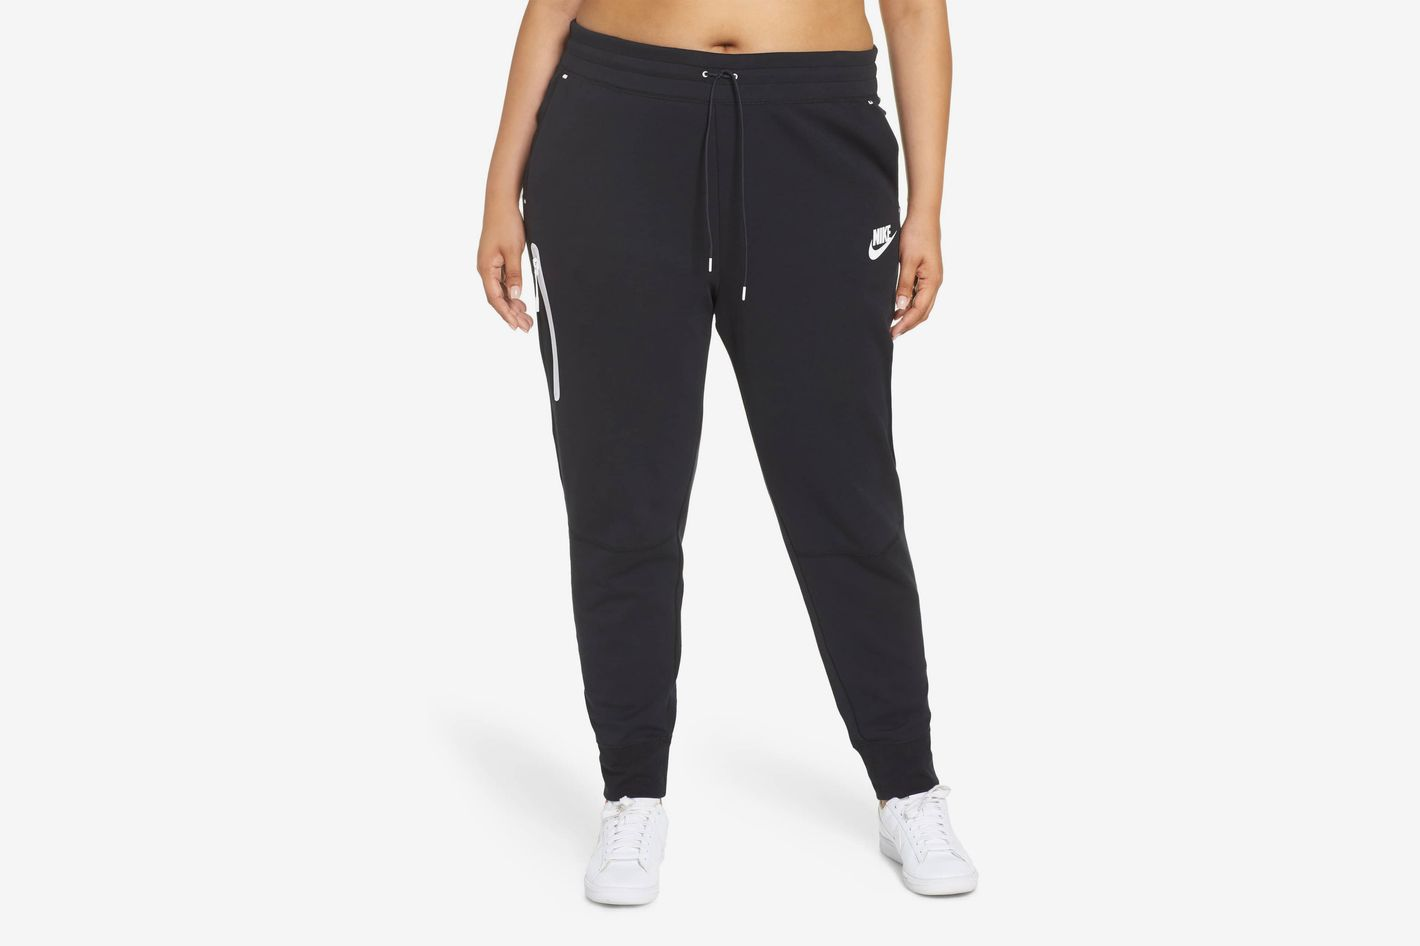 926ce37caa226 The Best Plus-Size Workout Clothes